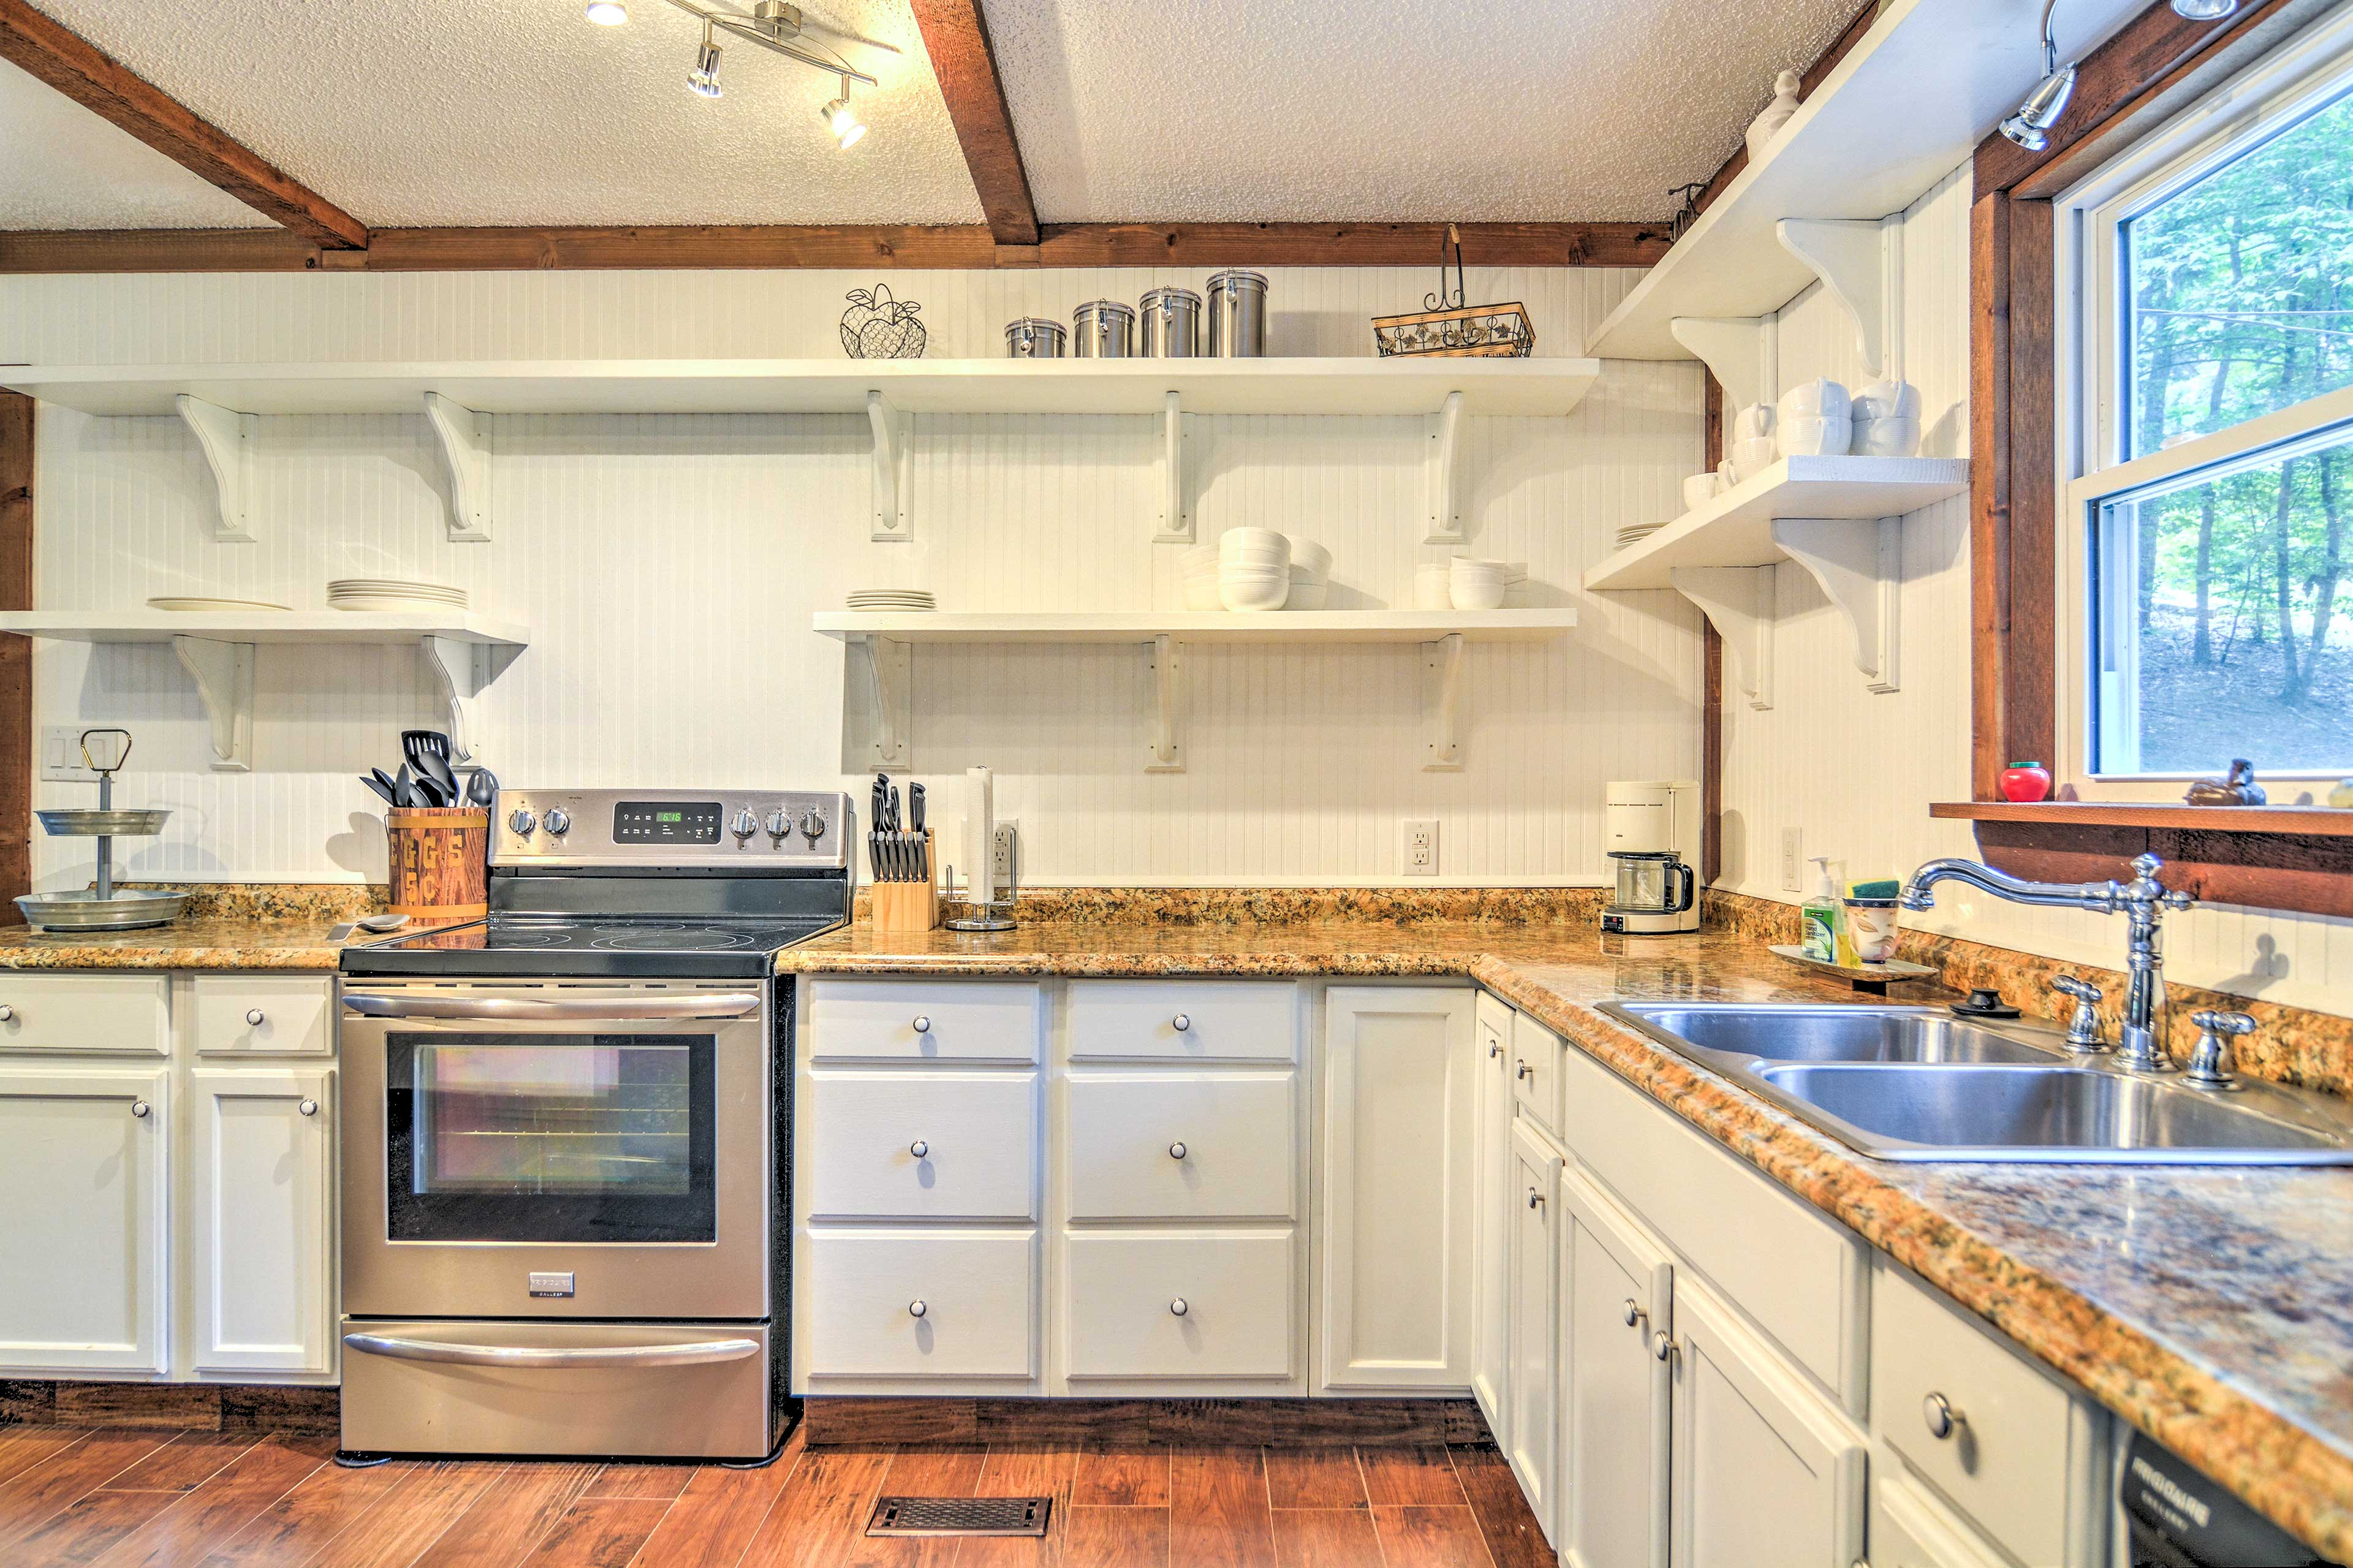 The kitchen features stainless steel appliances and beautiful countertops.